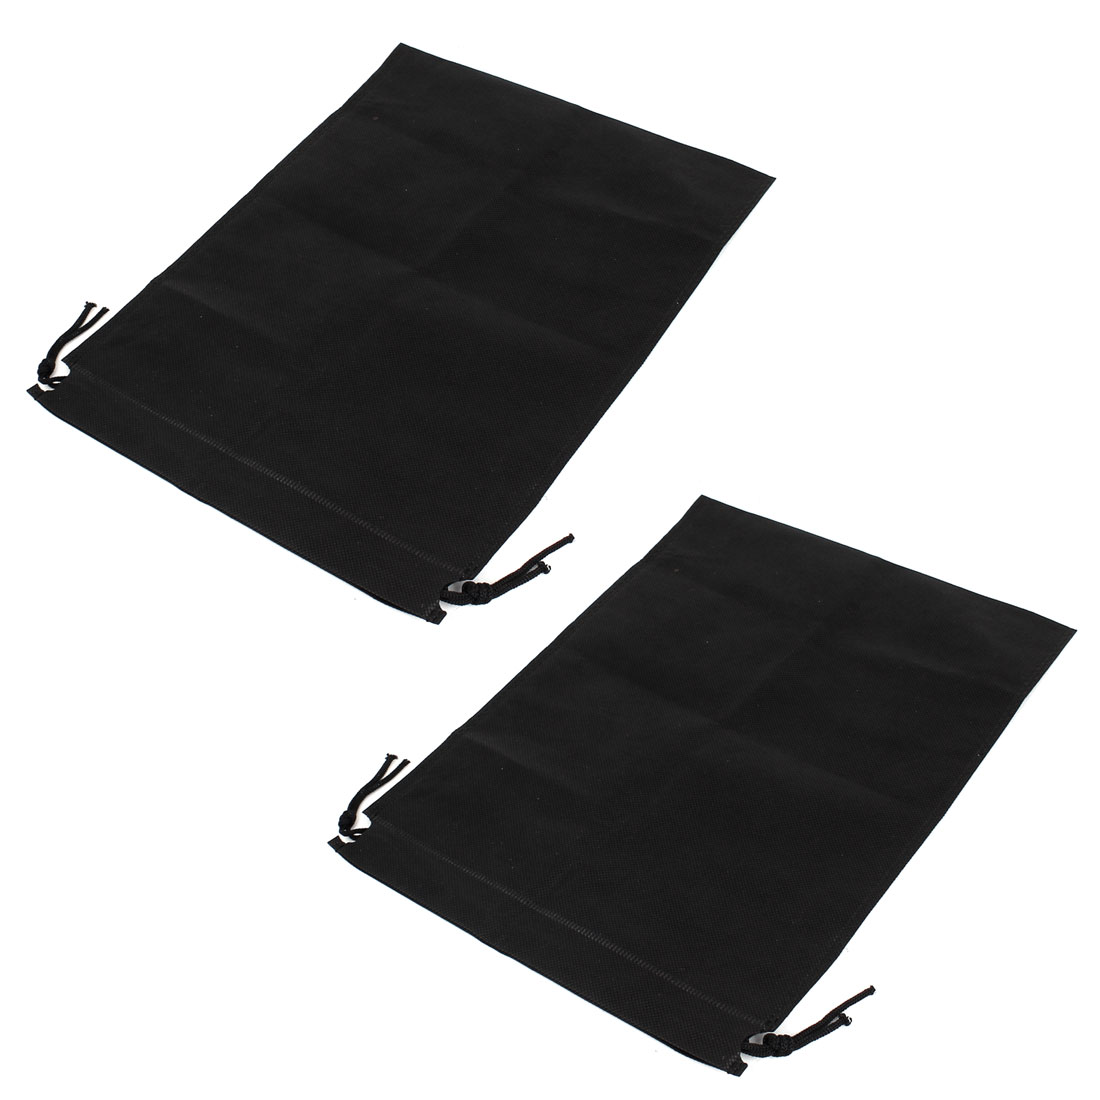 Drawstring Cinch Sack Textured Bags Holder 50cm x 40cm 2 Pcs Black